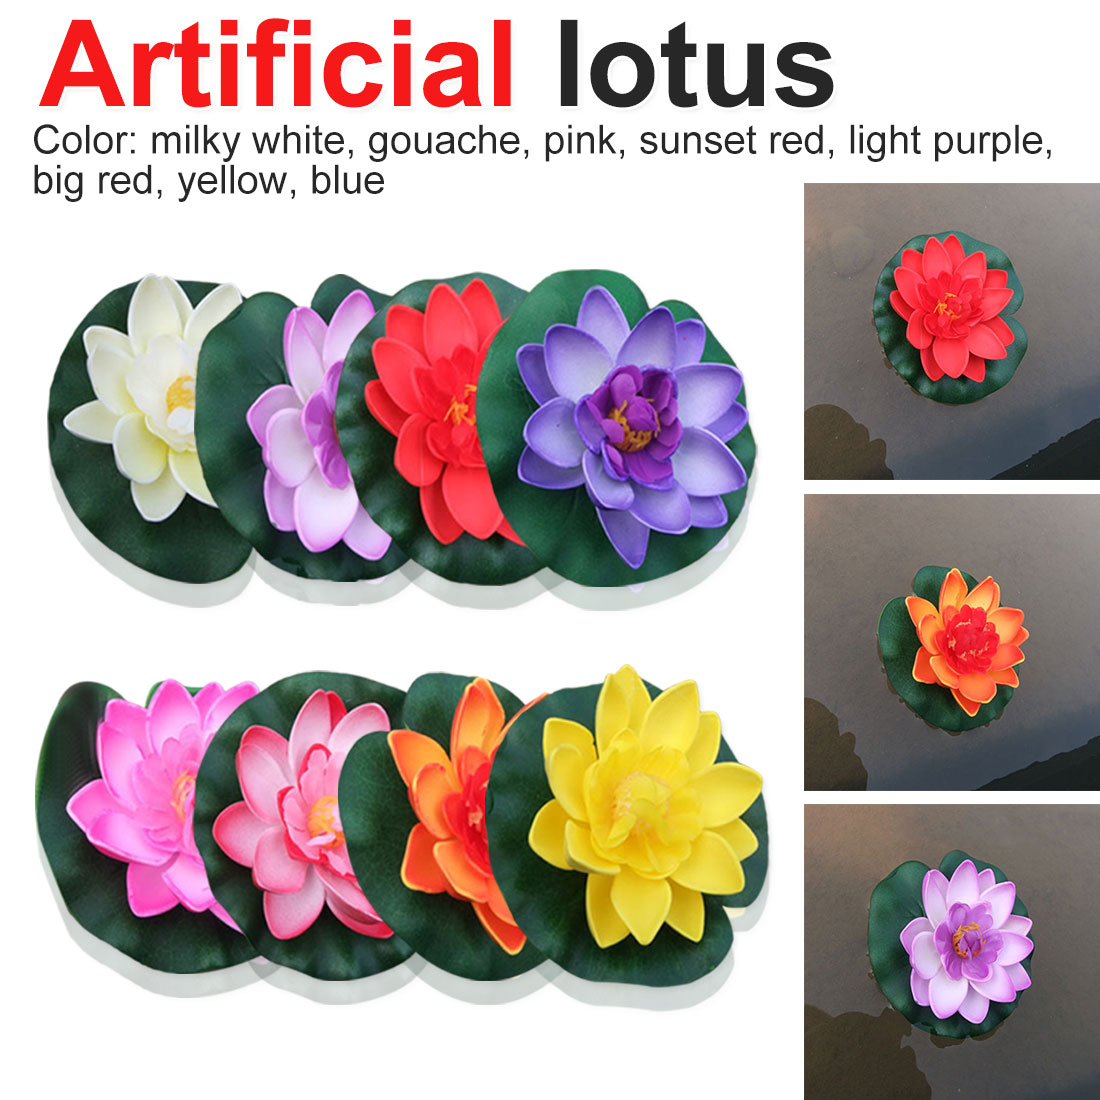 Artificial Lotus Home Garden Pond Decoration Artificial Lotus Water Lily Floating Flower Pond Plant Ornament 1pcs 10cm